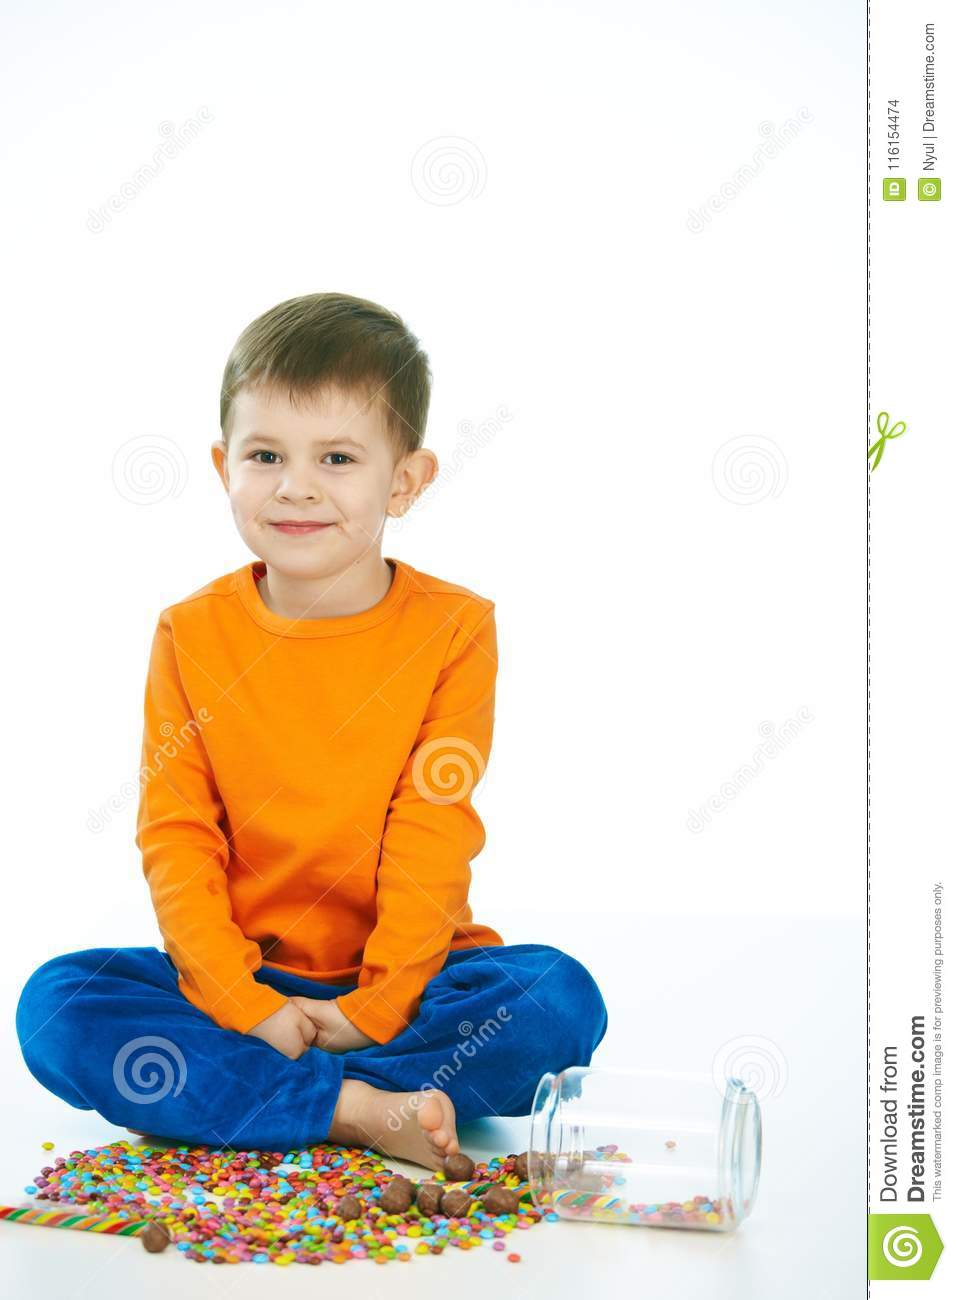 Kid sitting cross-legged with sweet jar spilled